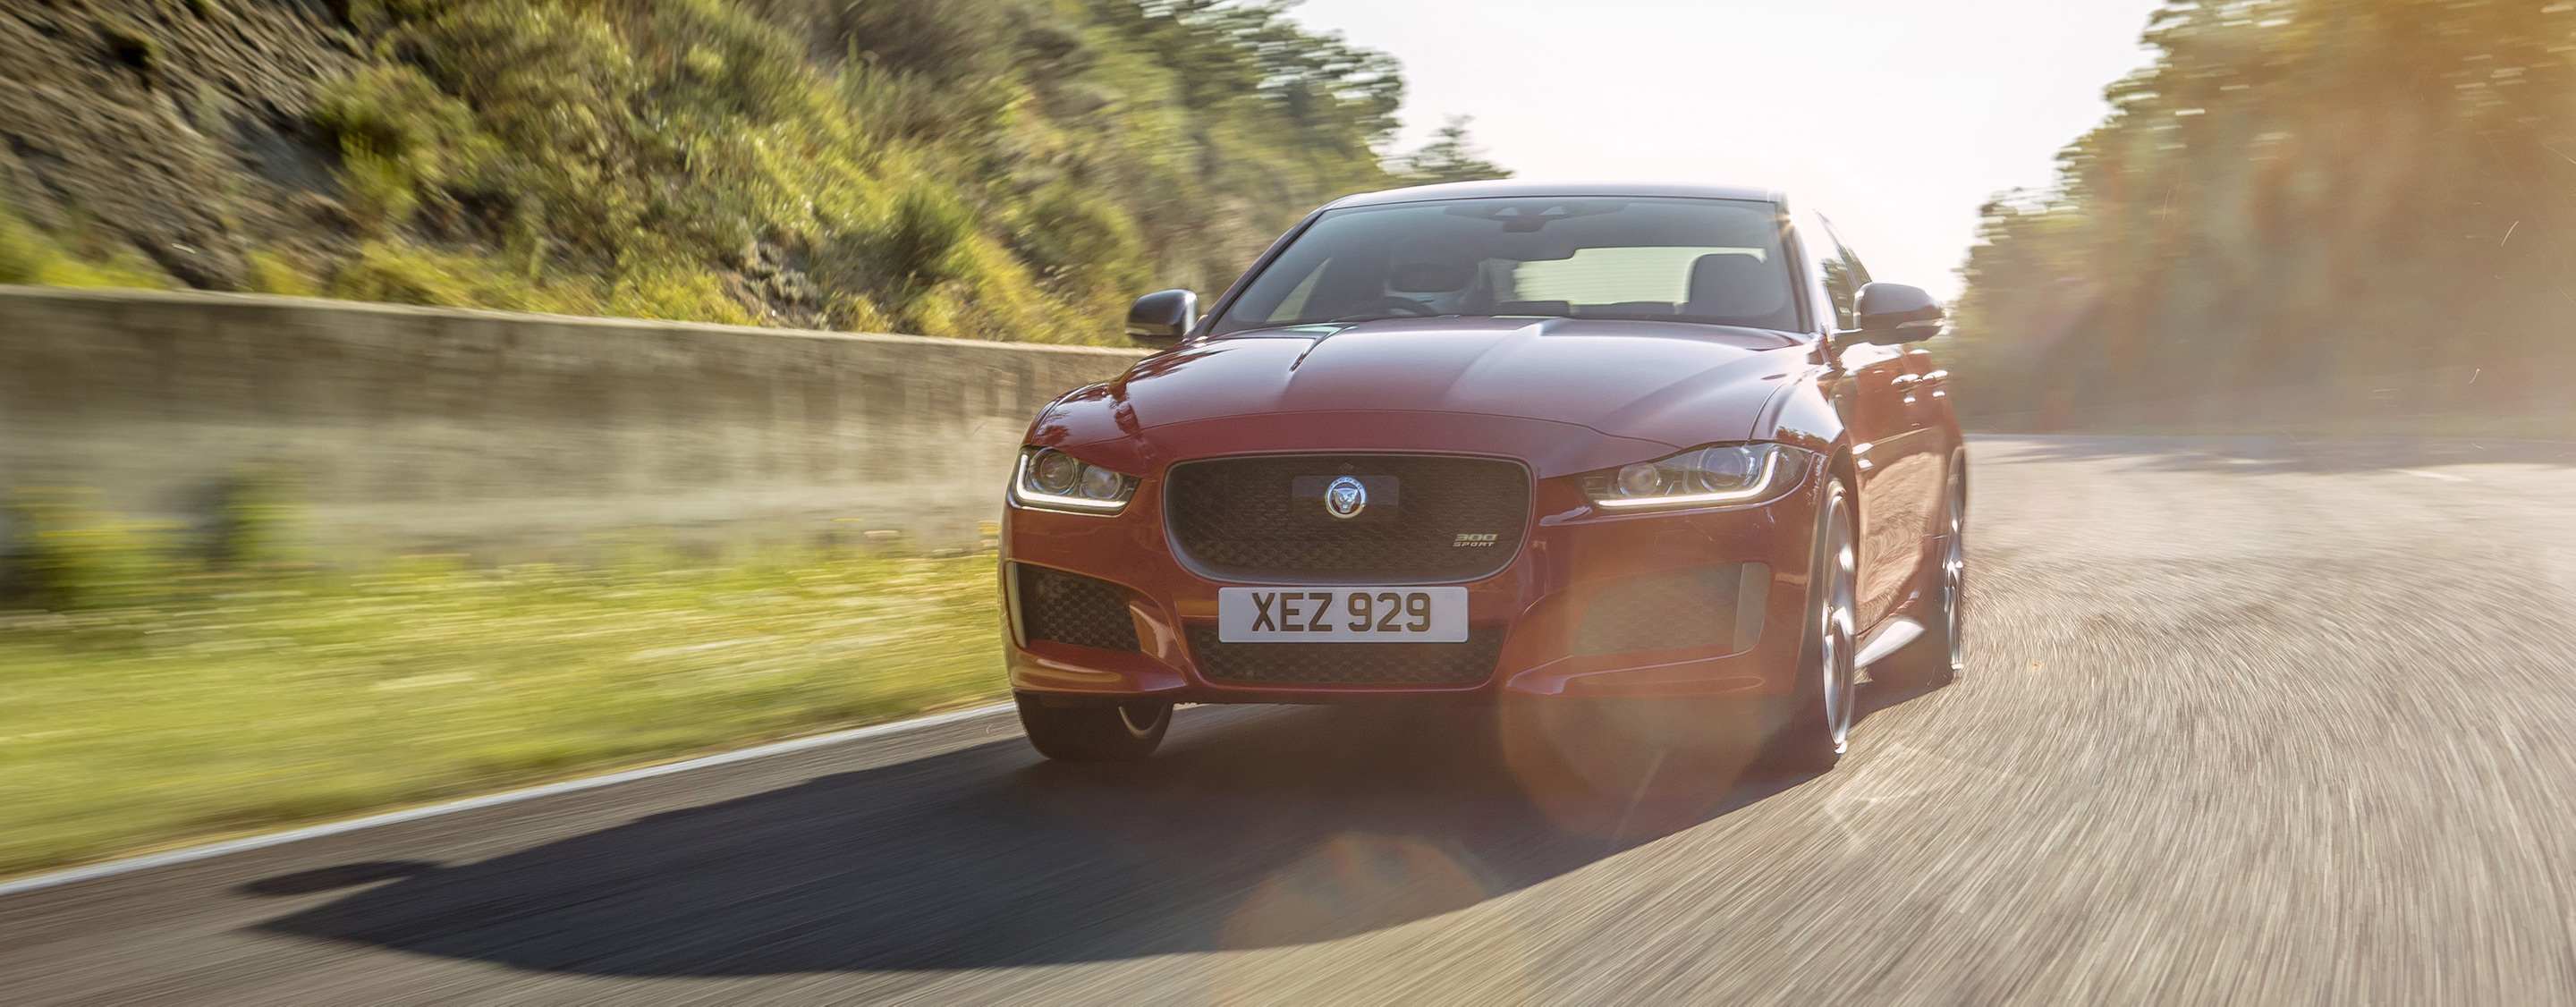 TrackWorthy - 2019 Jaguar XE 300 SPORT at Forgotten GP Circuit (1)